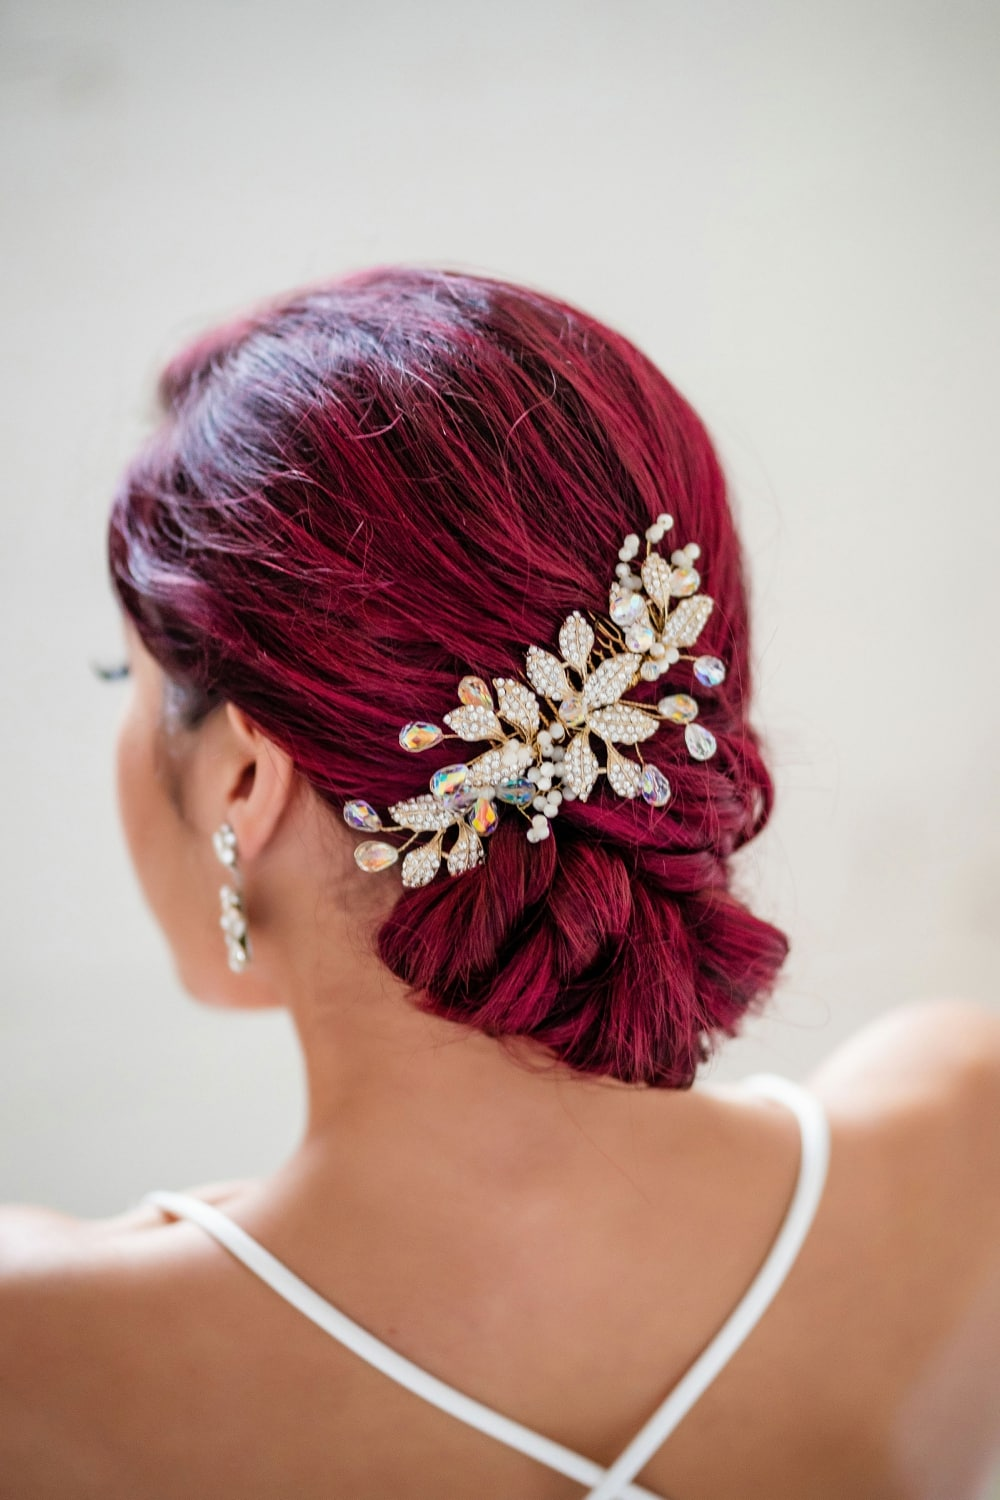 Little things borrowed - bridal accessories for rent